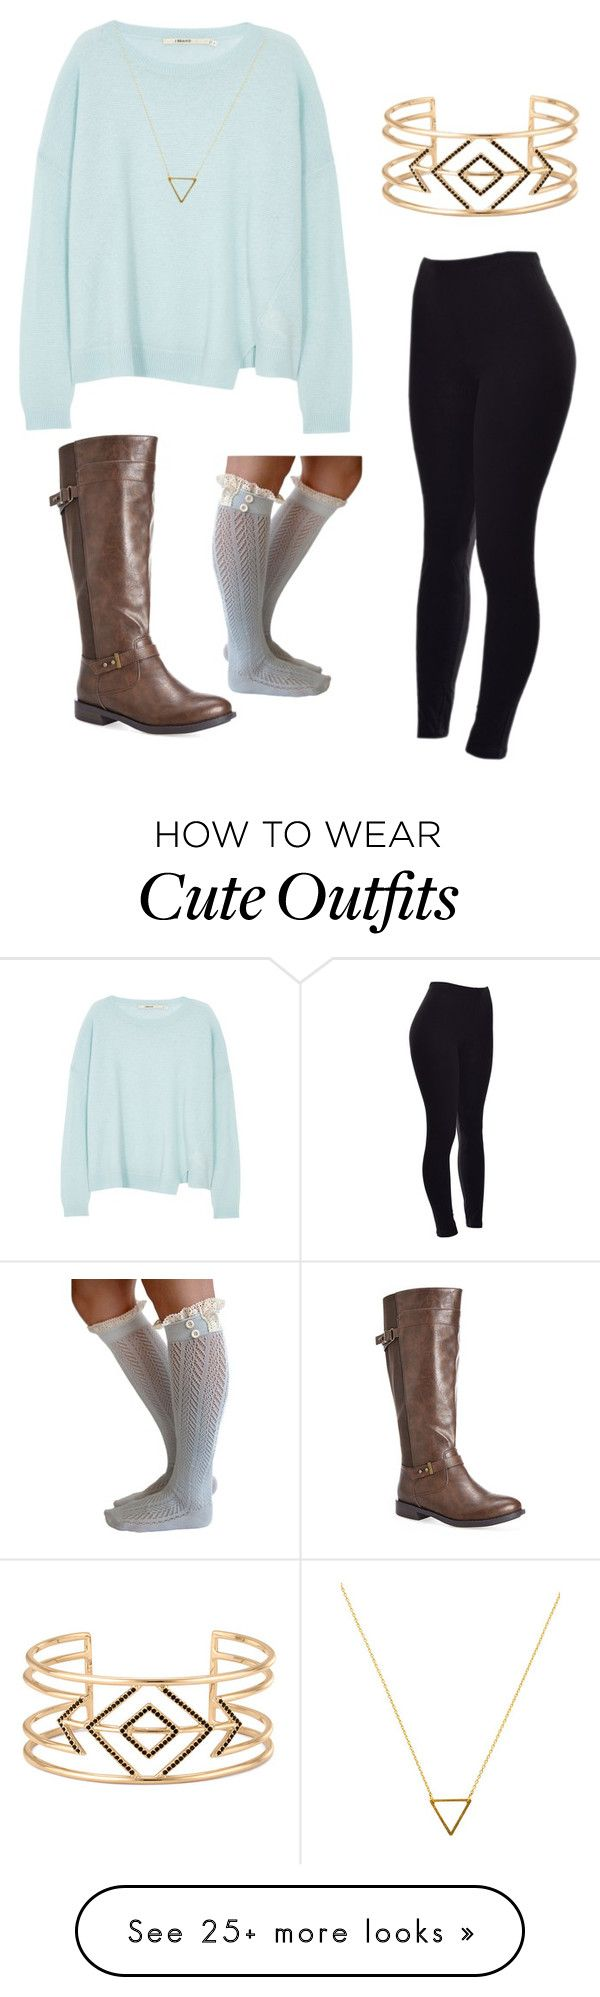 2019 year lifestyle- Winter cute outfits for school polyvore photo